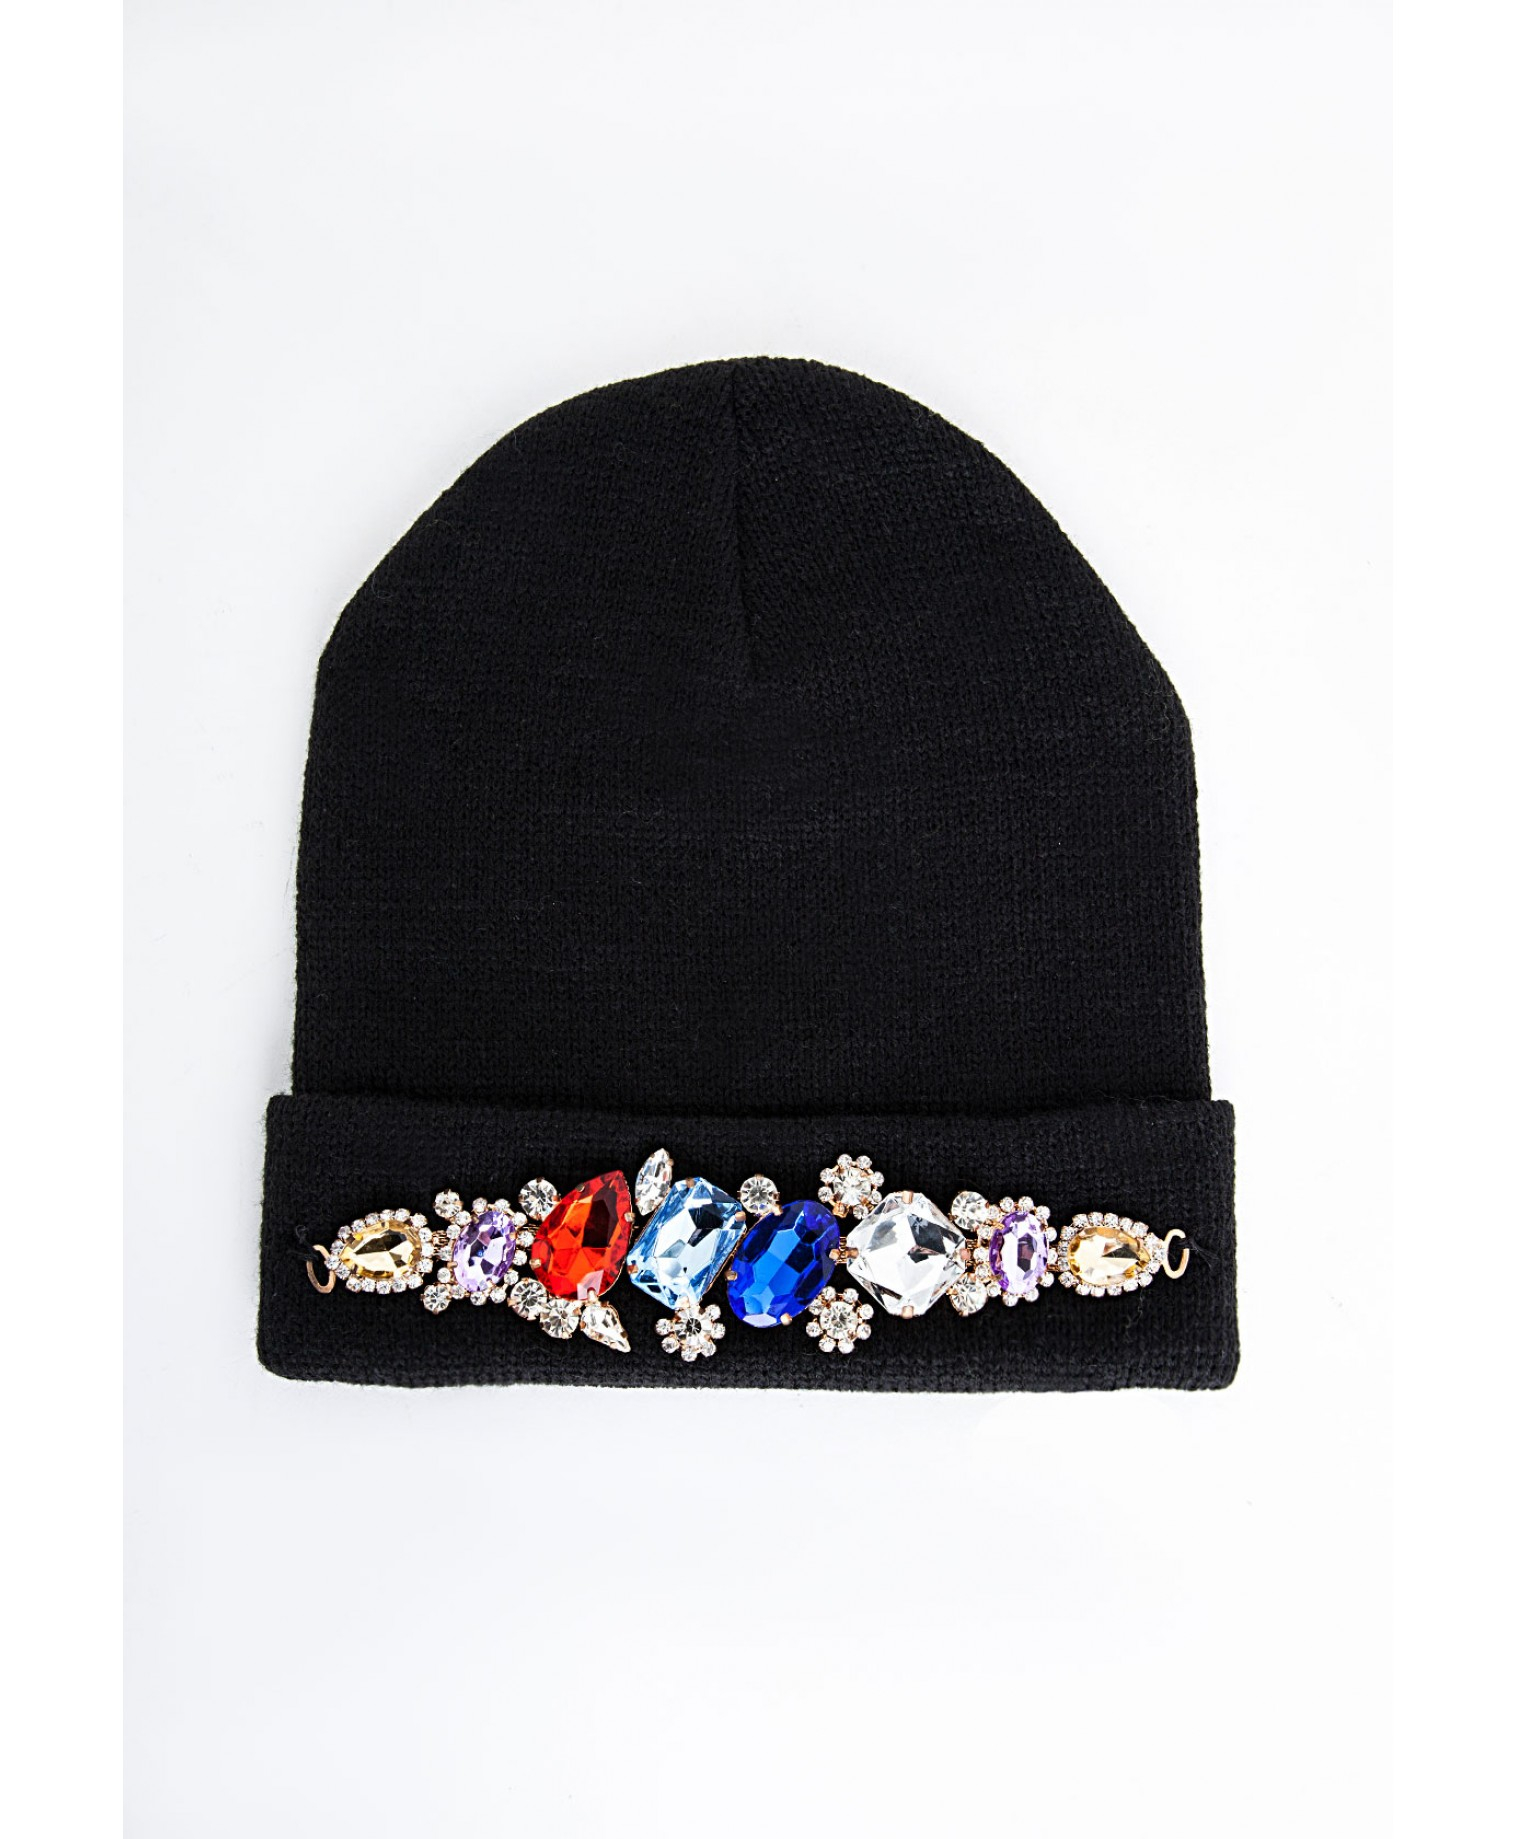 0ad2962dc13 Lyst - Missguided Alena Crystal Embellished Beanie Hat Black in Black